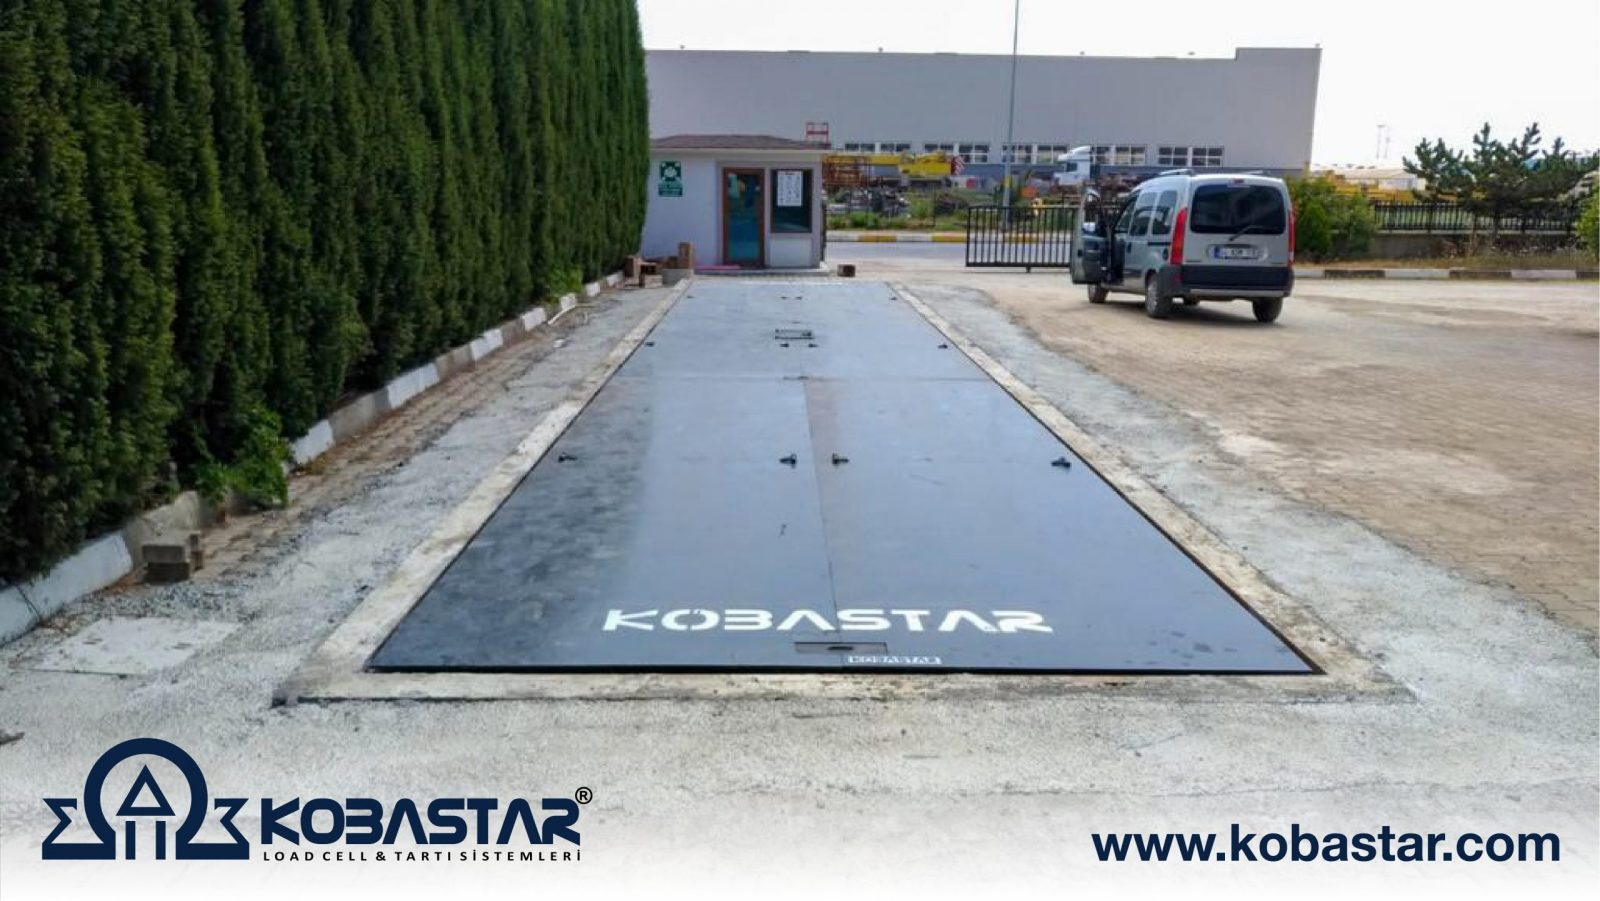 truck scale, What is Truck Scale, KOBASTAR Load Cell & Indicator